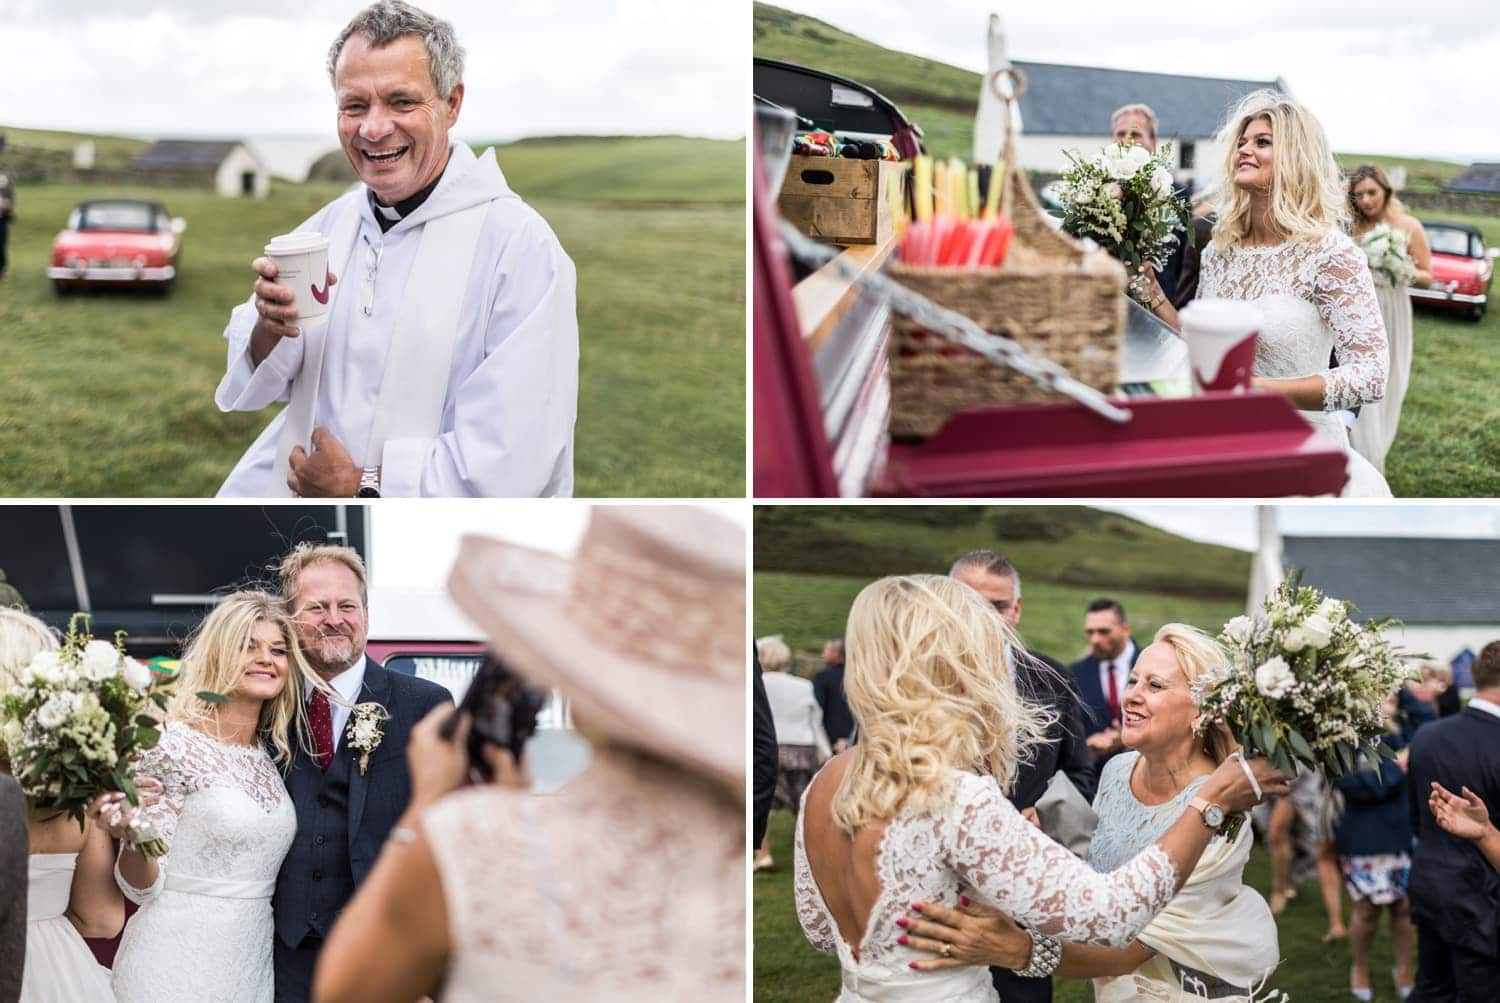 Wedding celebrations at Mwnt Church in Ceredigion, Wales